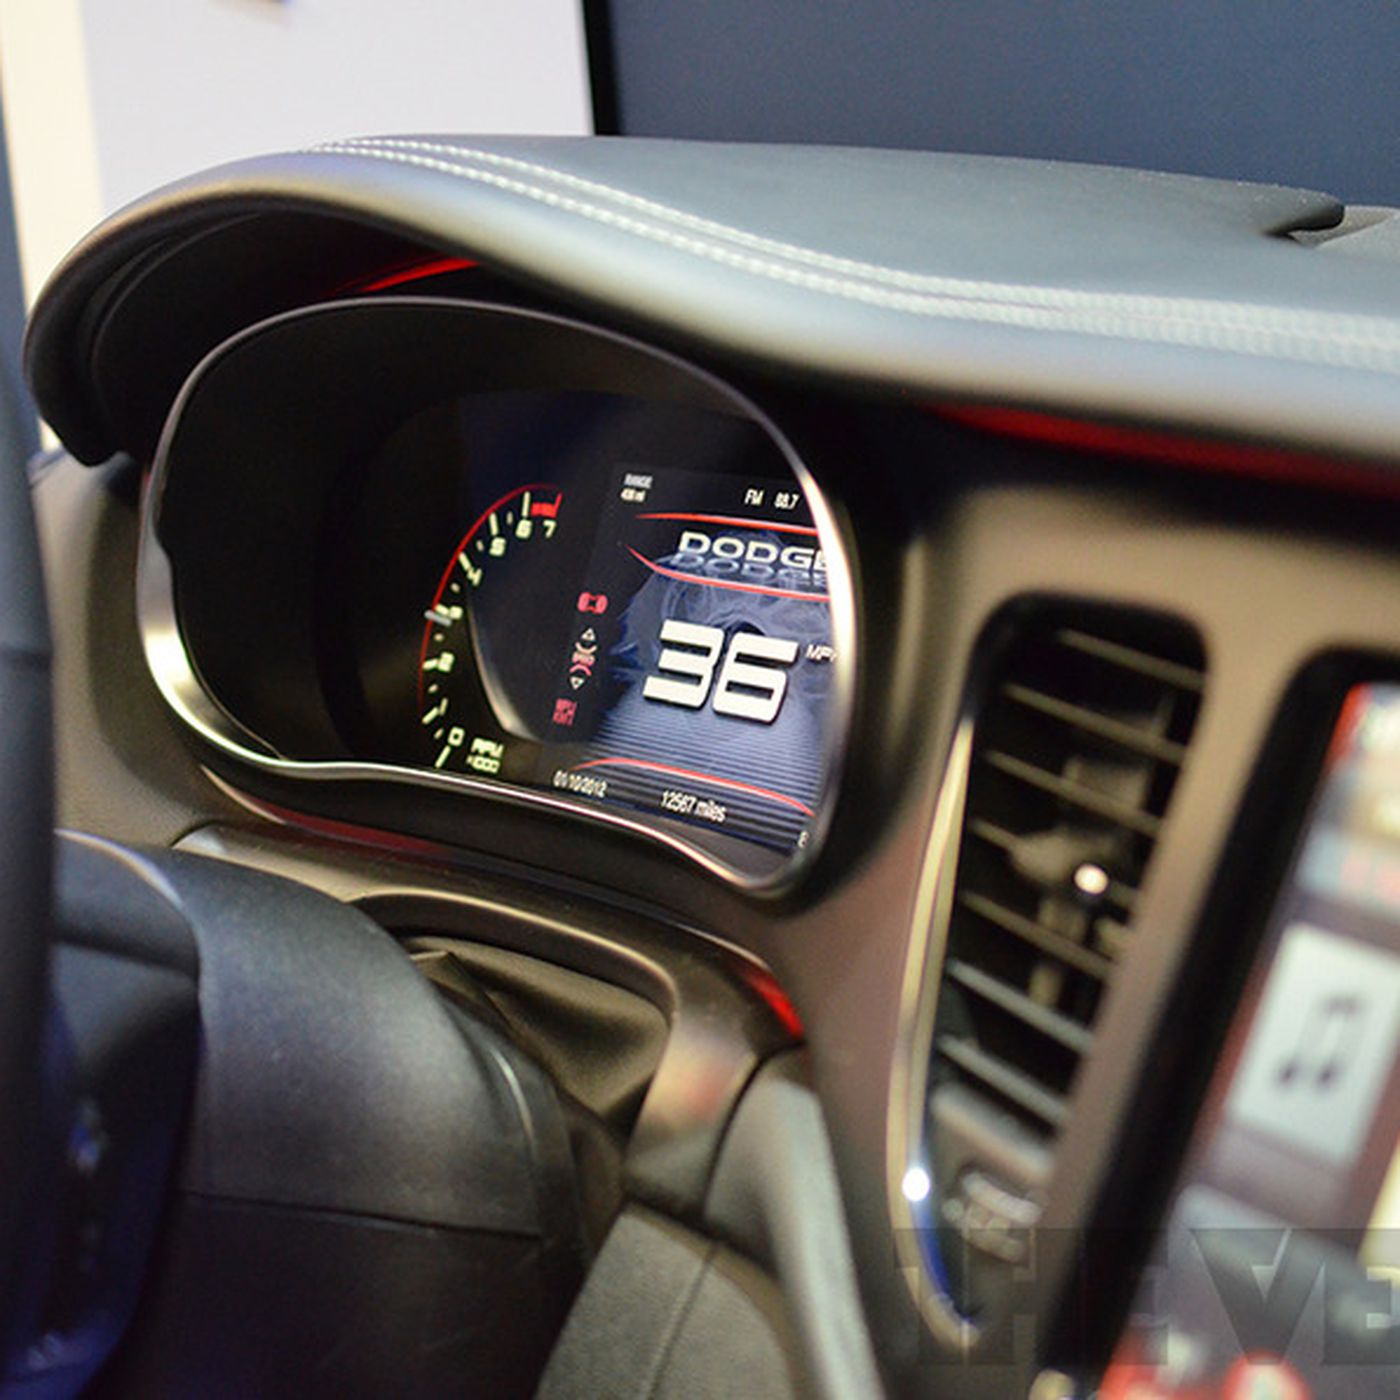 The 2013 Dodge Dart S New Digital Dashboard Hands On Photos The Verge